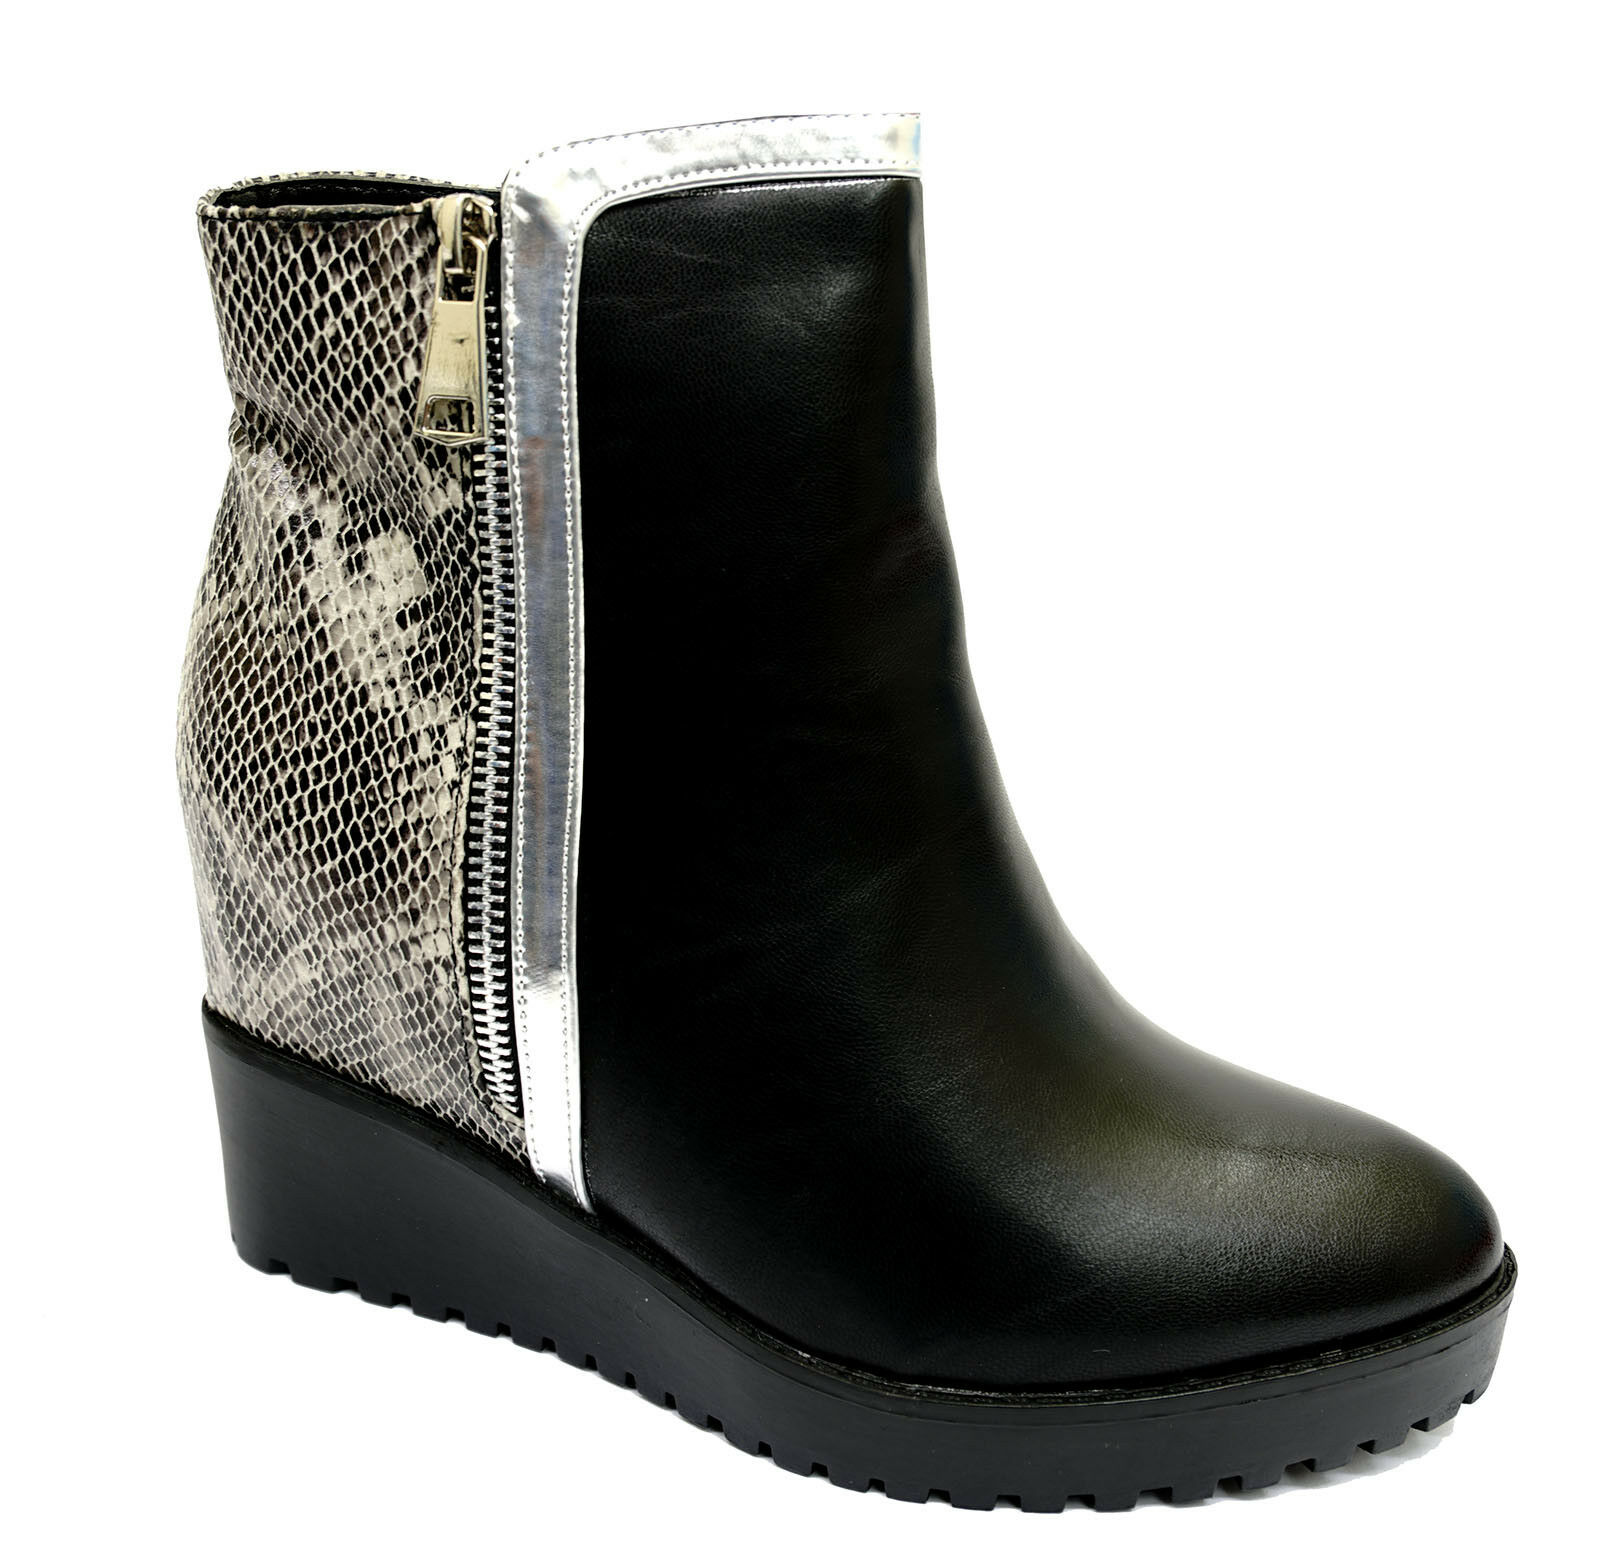 WOMENS BLACK SNAKE WEDGE ZIP-UP SMART ROCK-CHICK ANKLE CHELSEA BOOTS SHOES 3-8